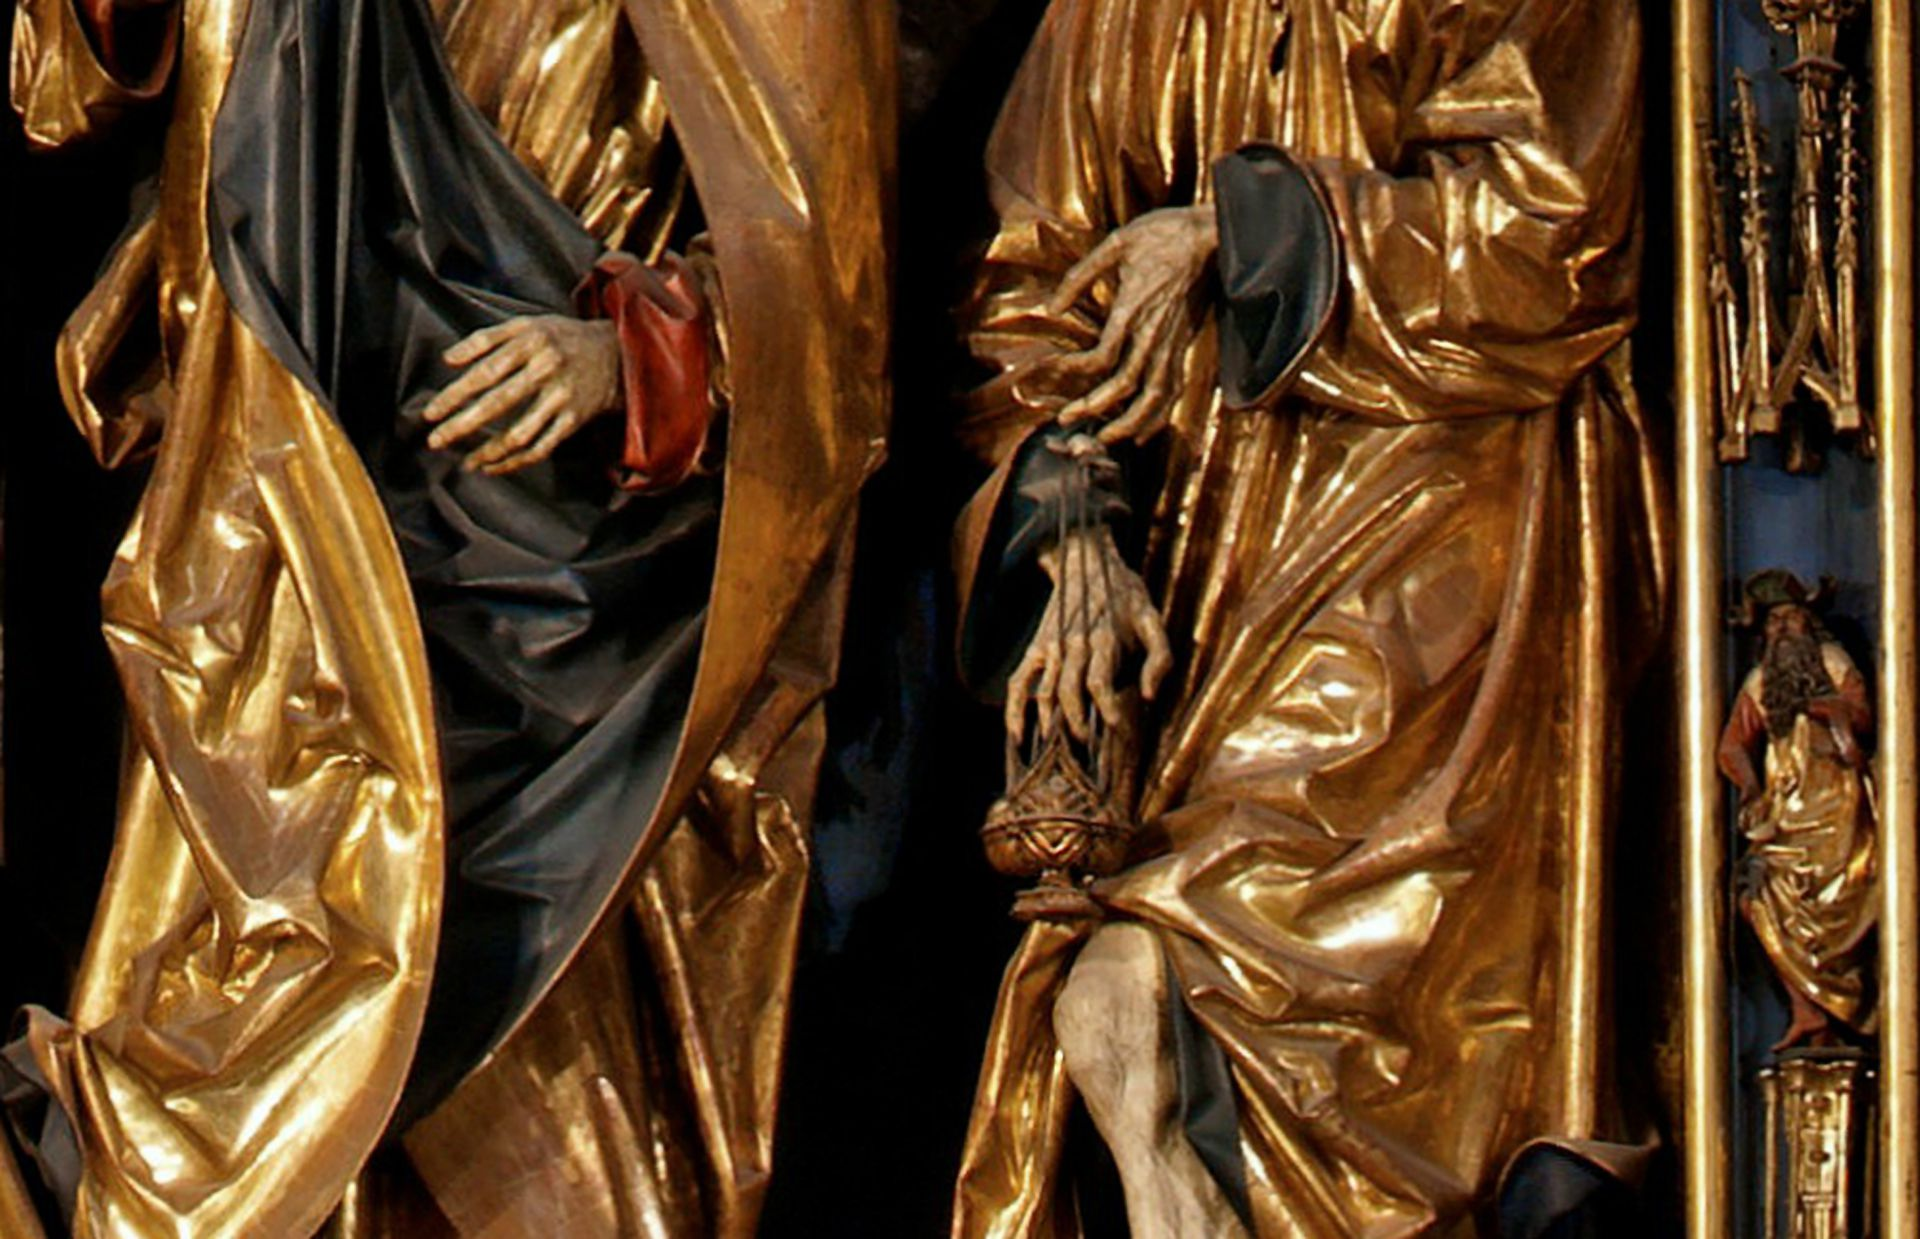 Altar of Mary Shrine detail with hands